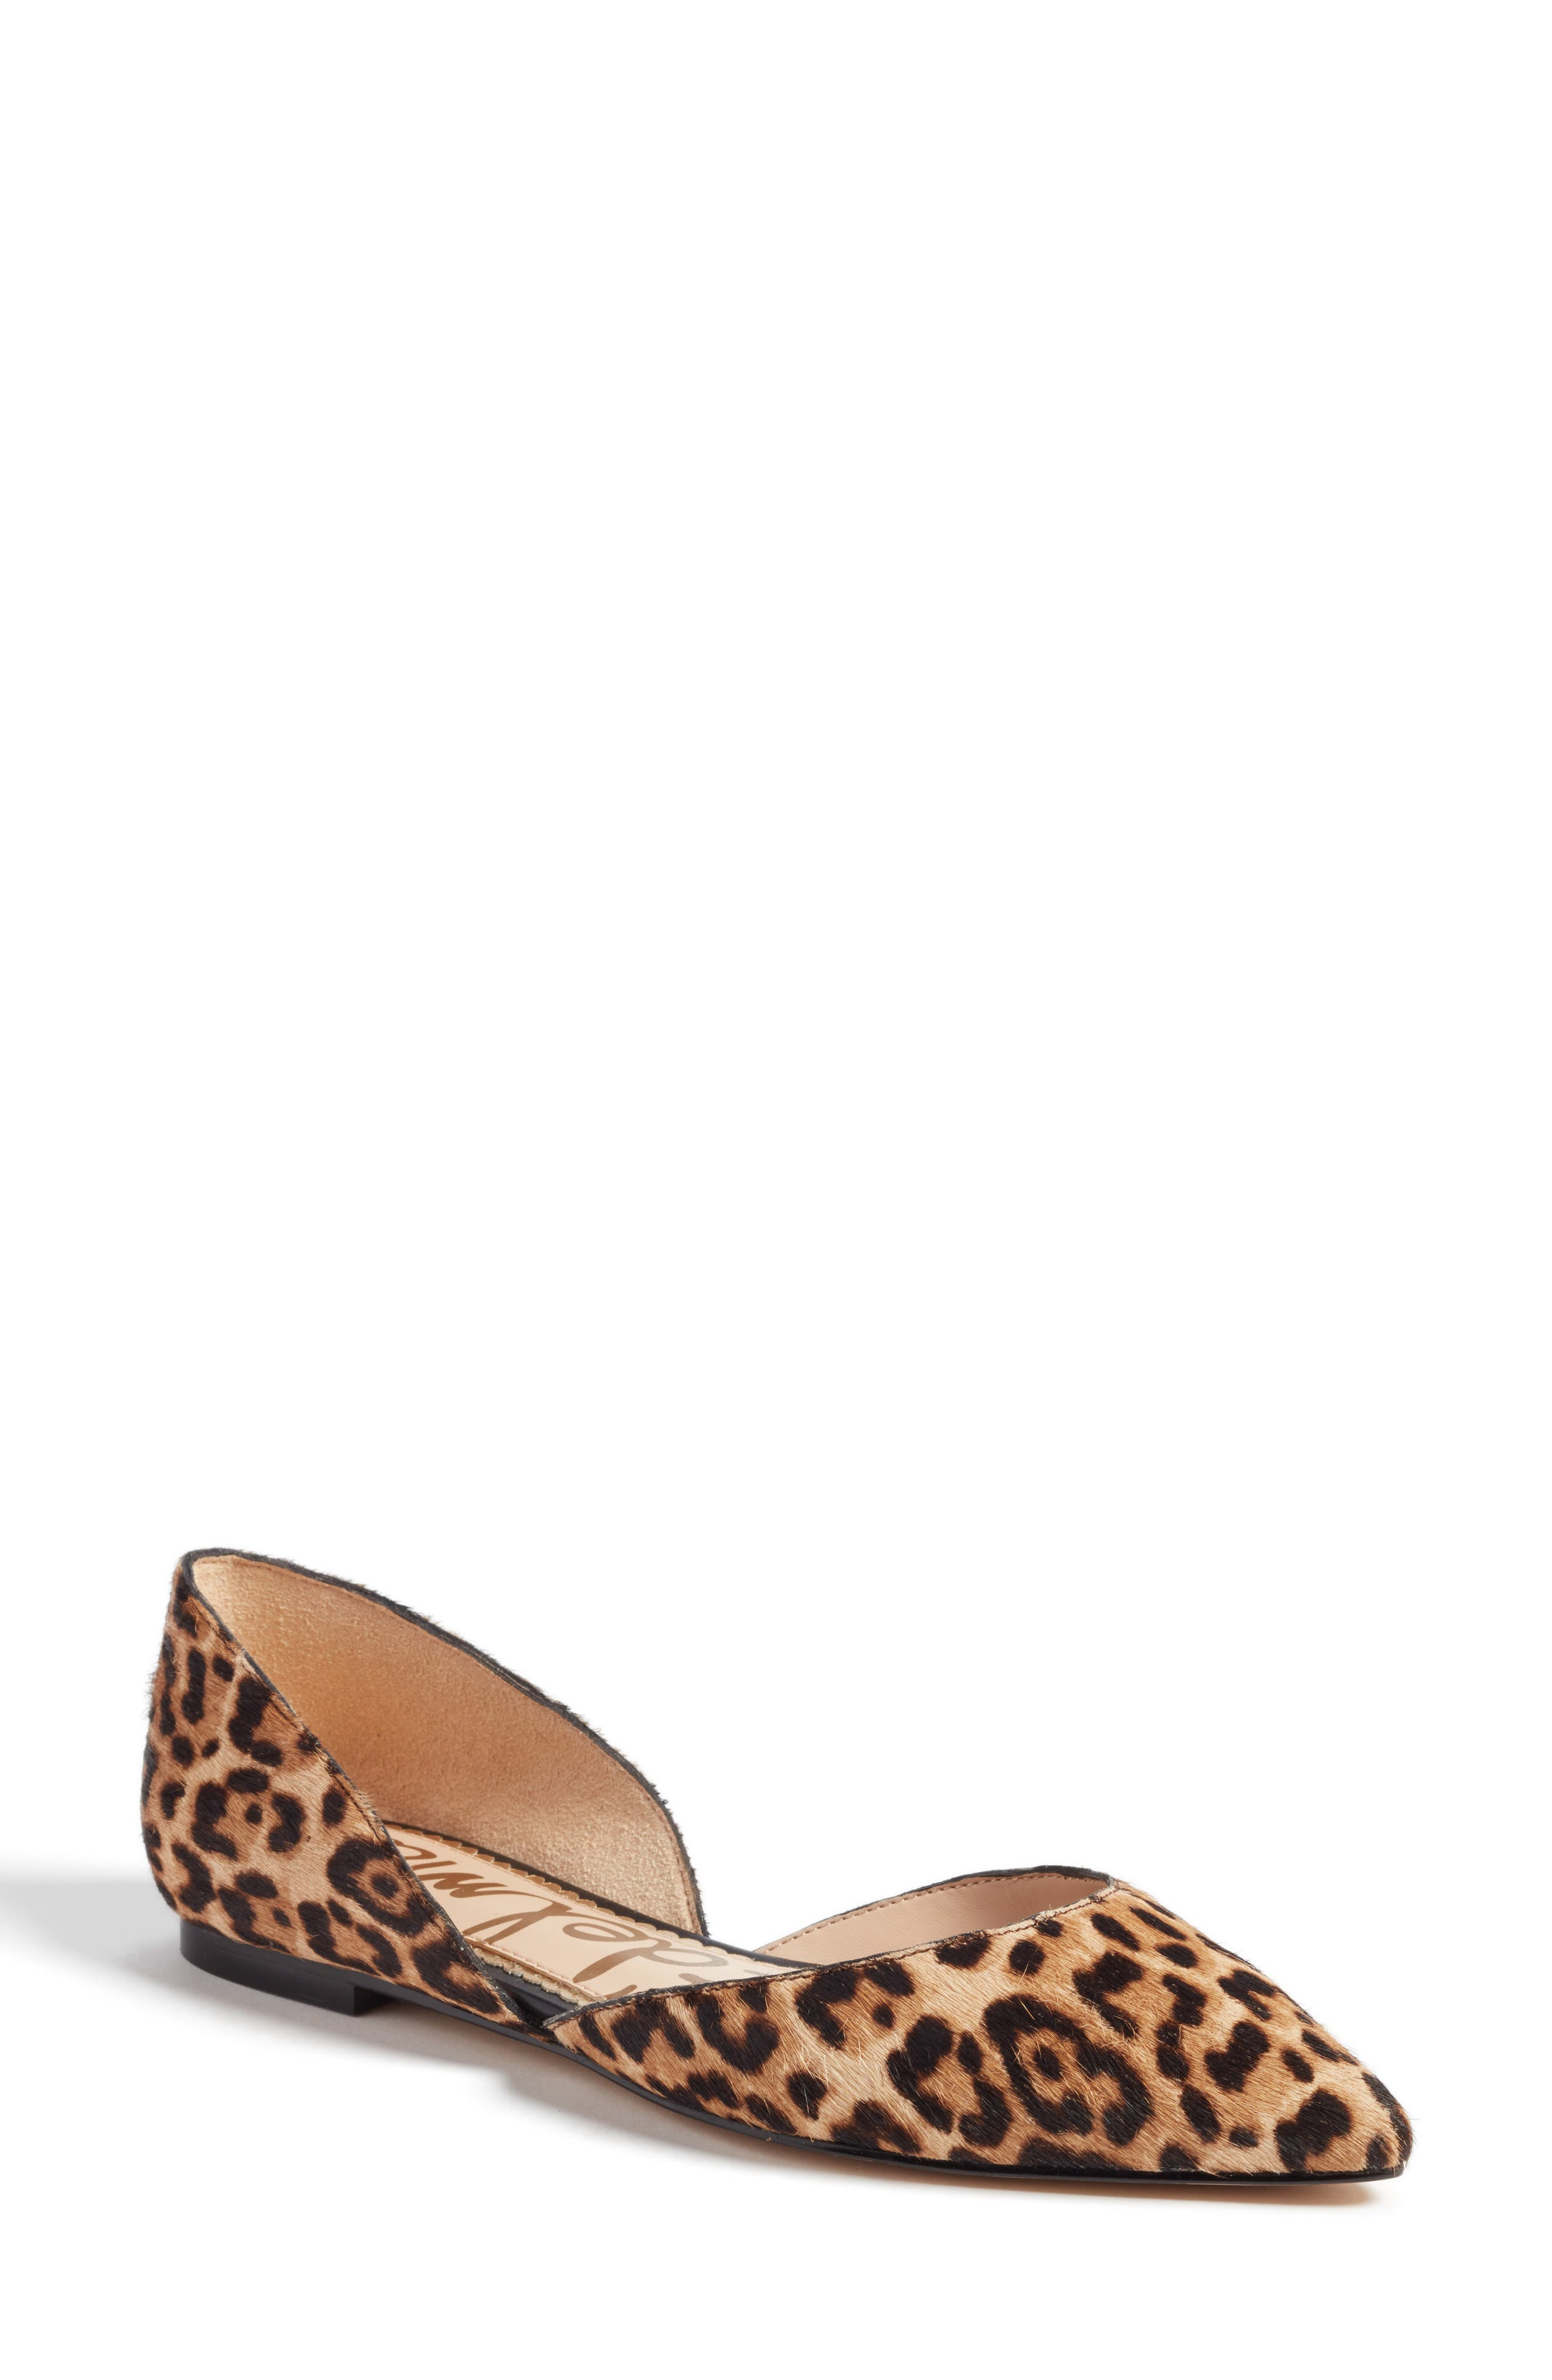 Rodney Pointy Toe Genuine Calf Hair Flat,                             Main thumbnail 1, color,                             Sand Leopard Calf Hair